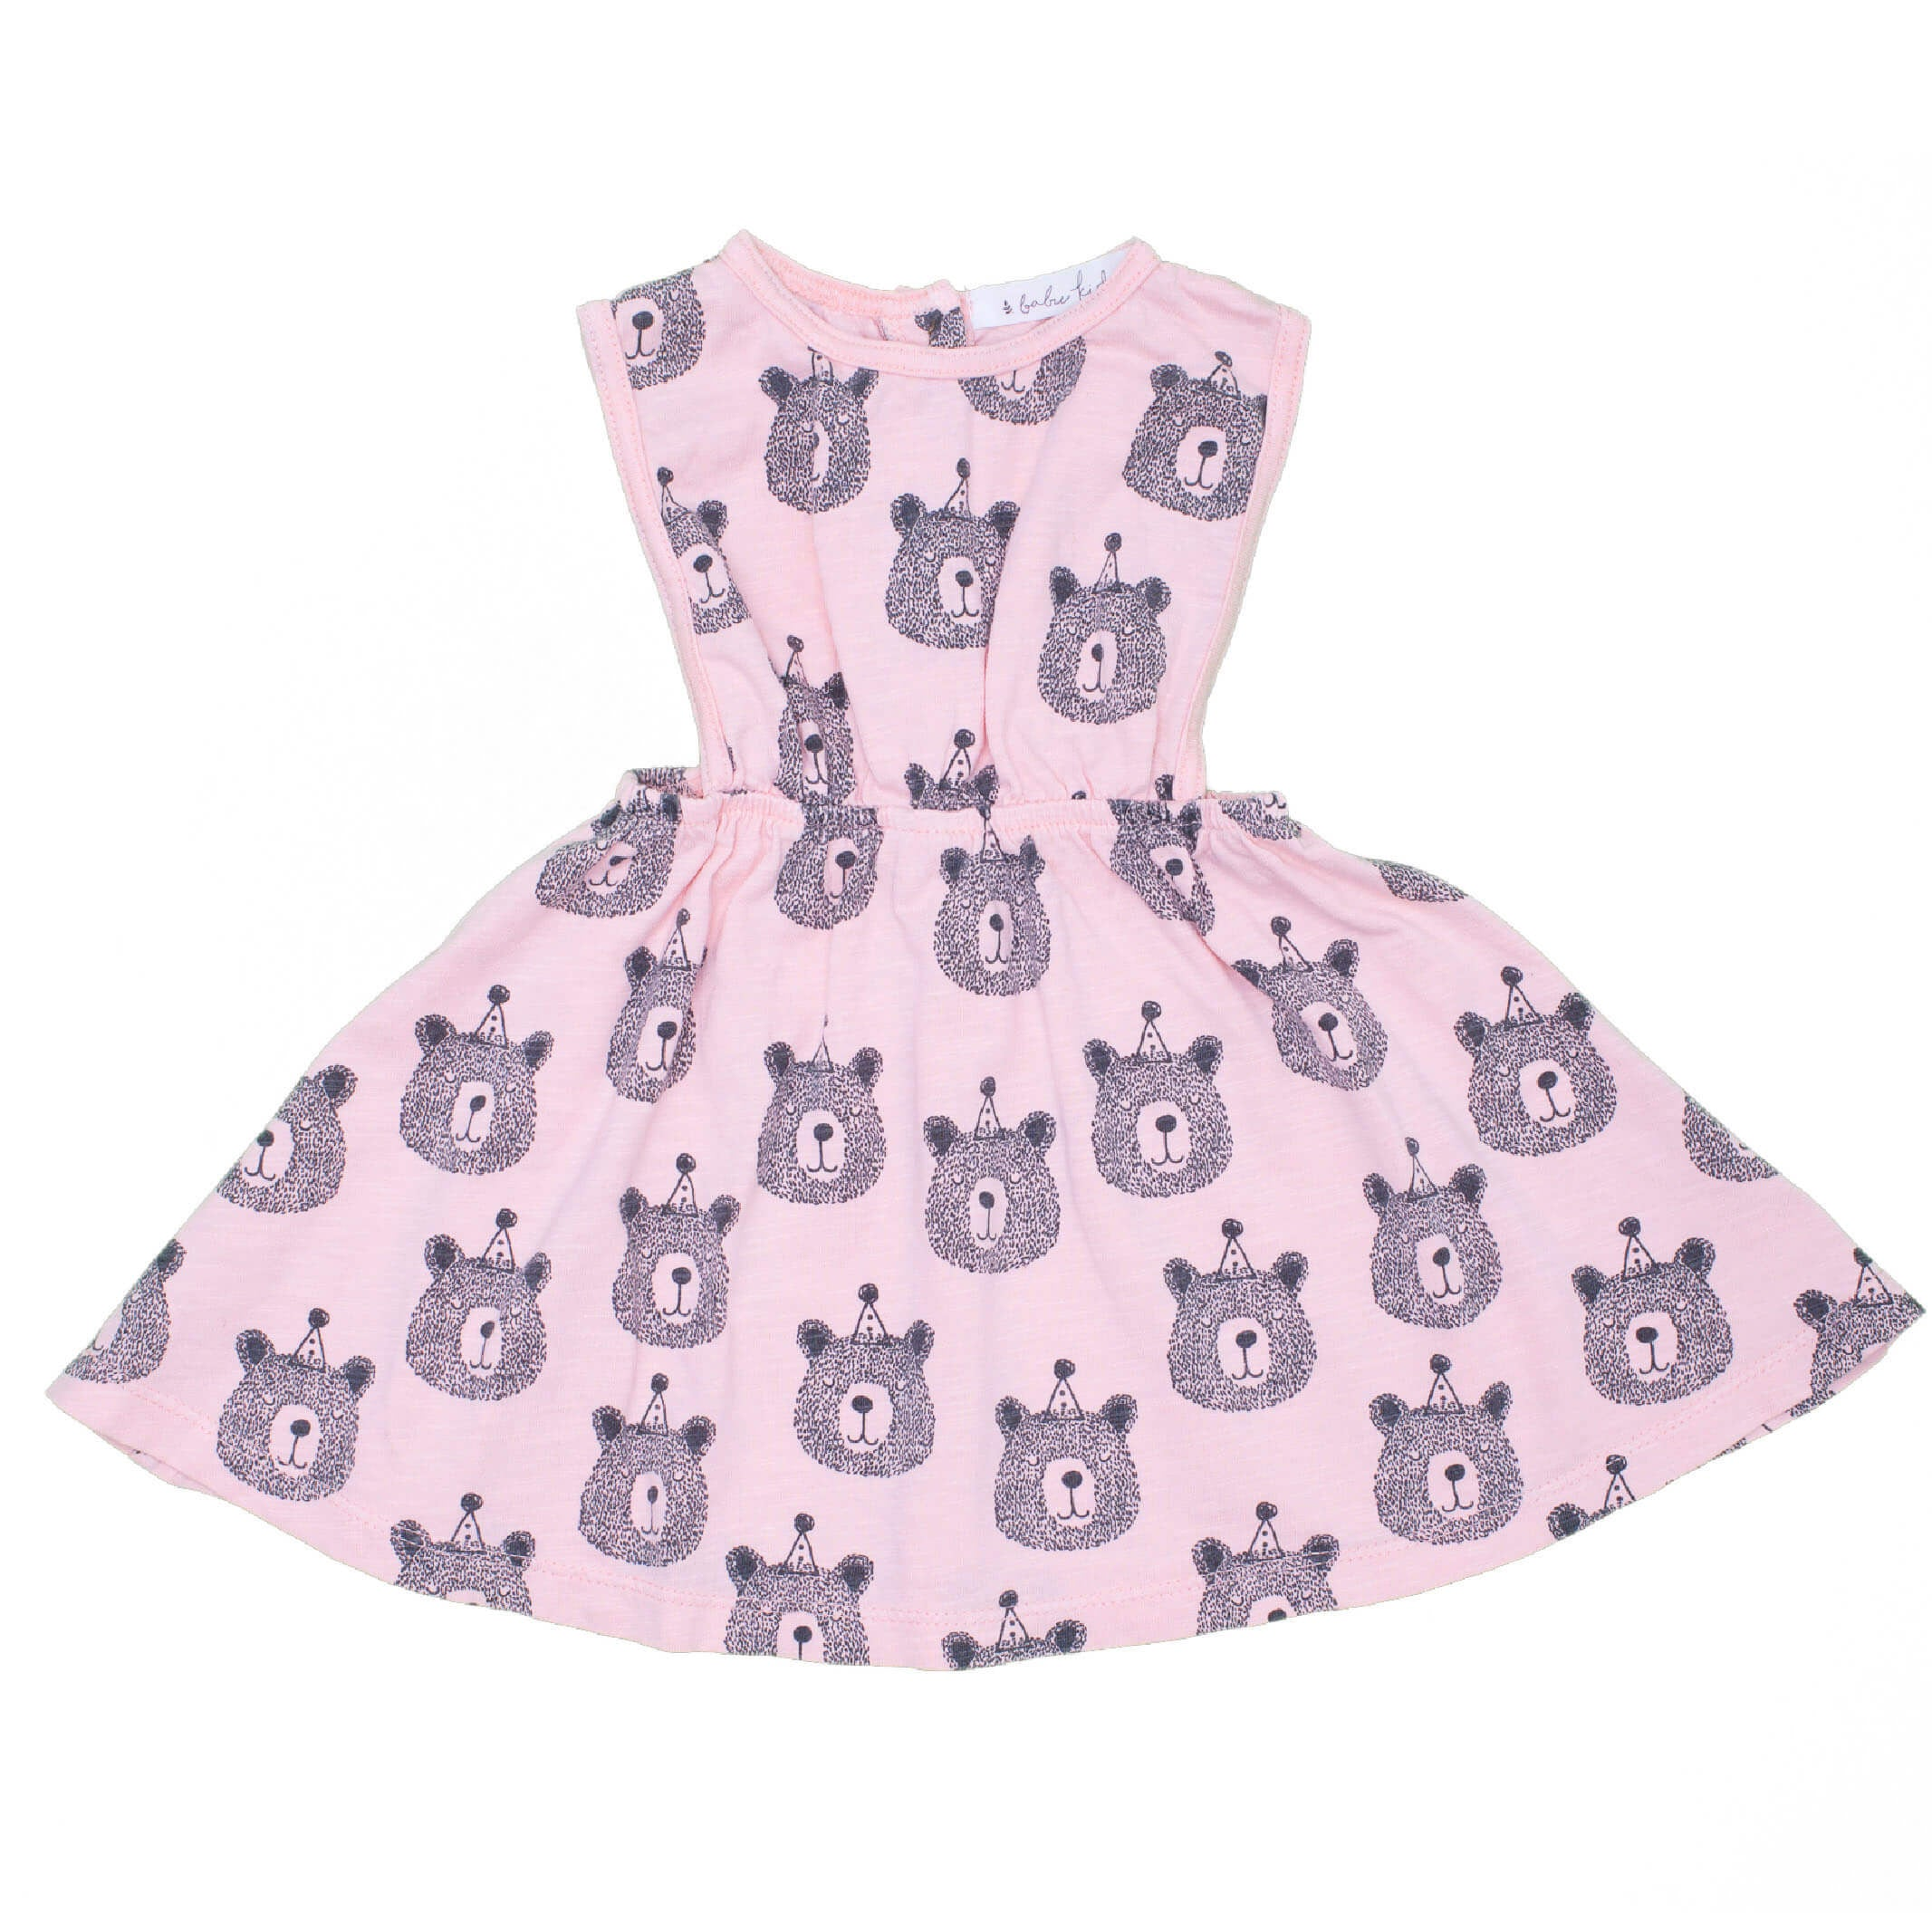 Bears Print Dress, soft pink